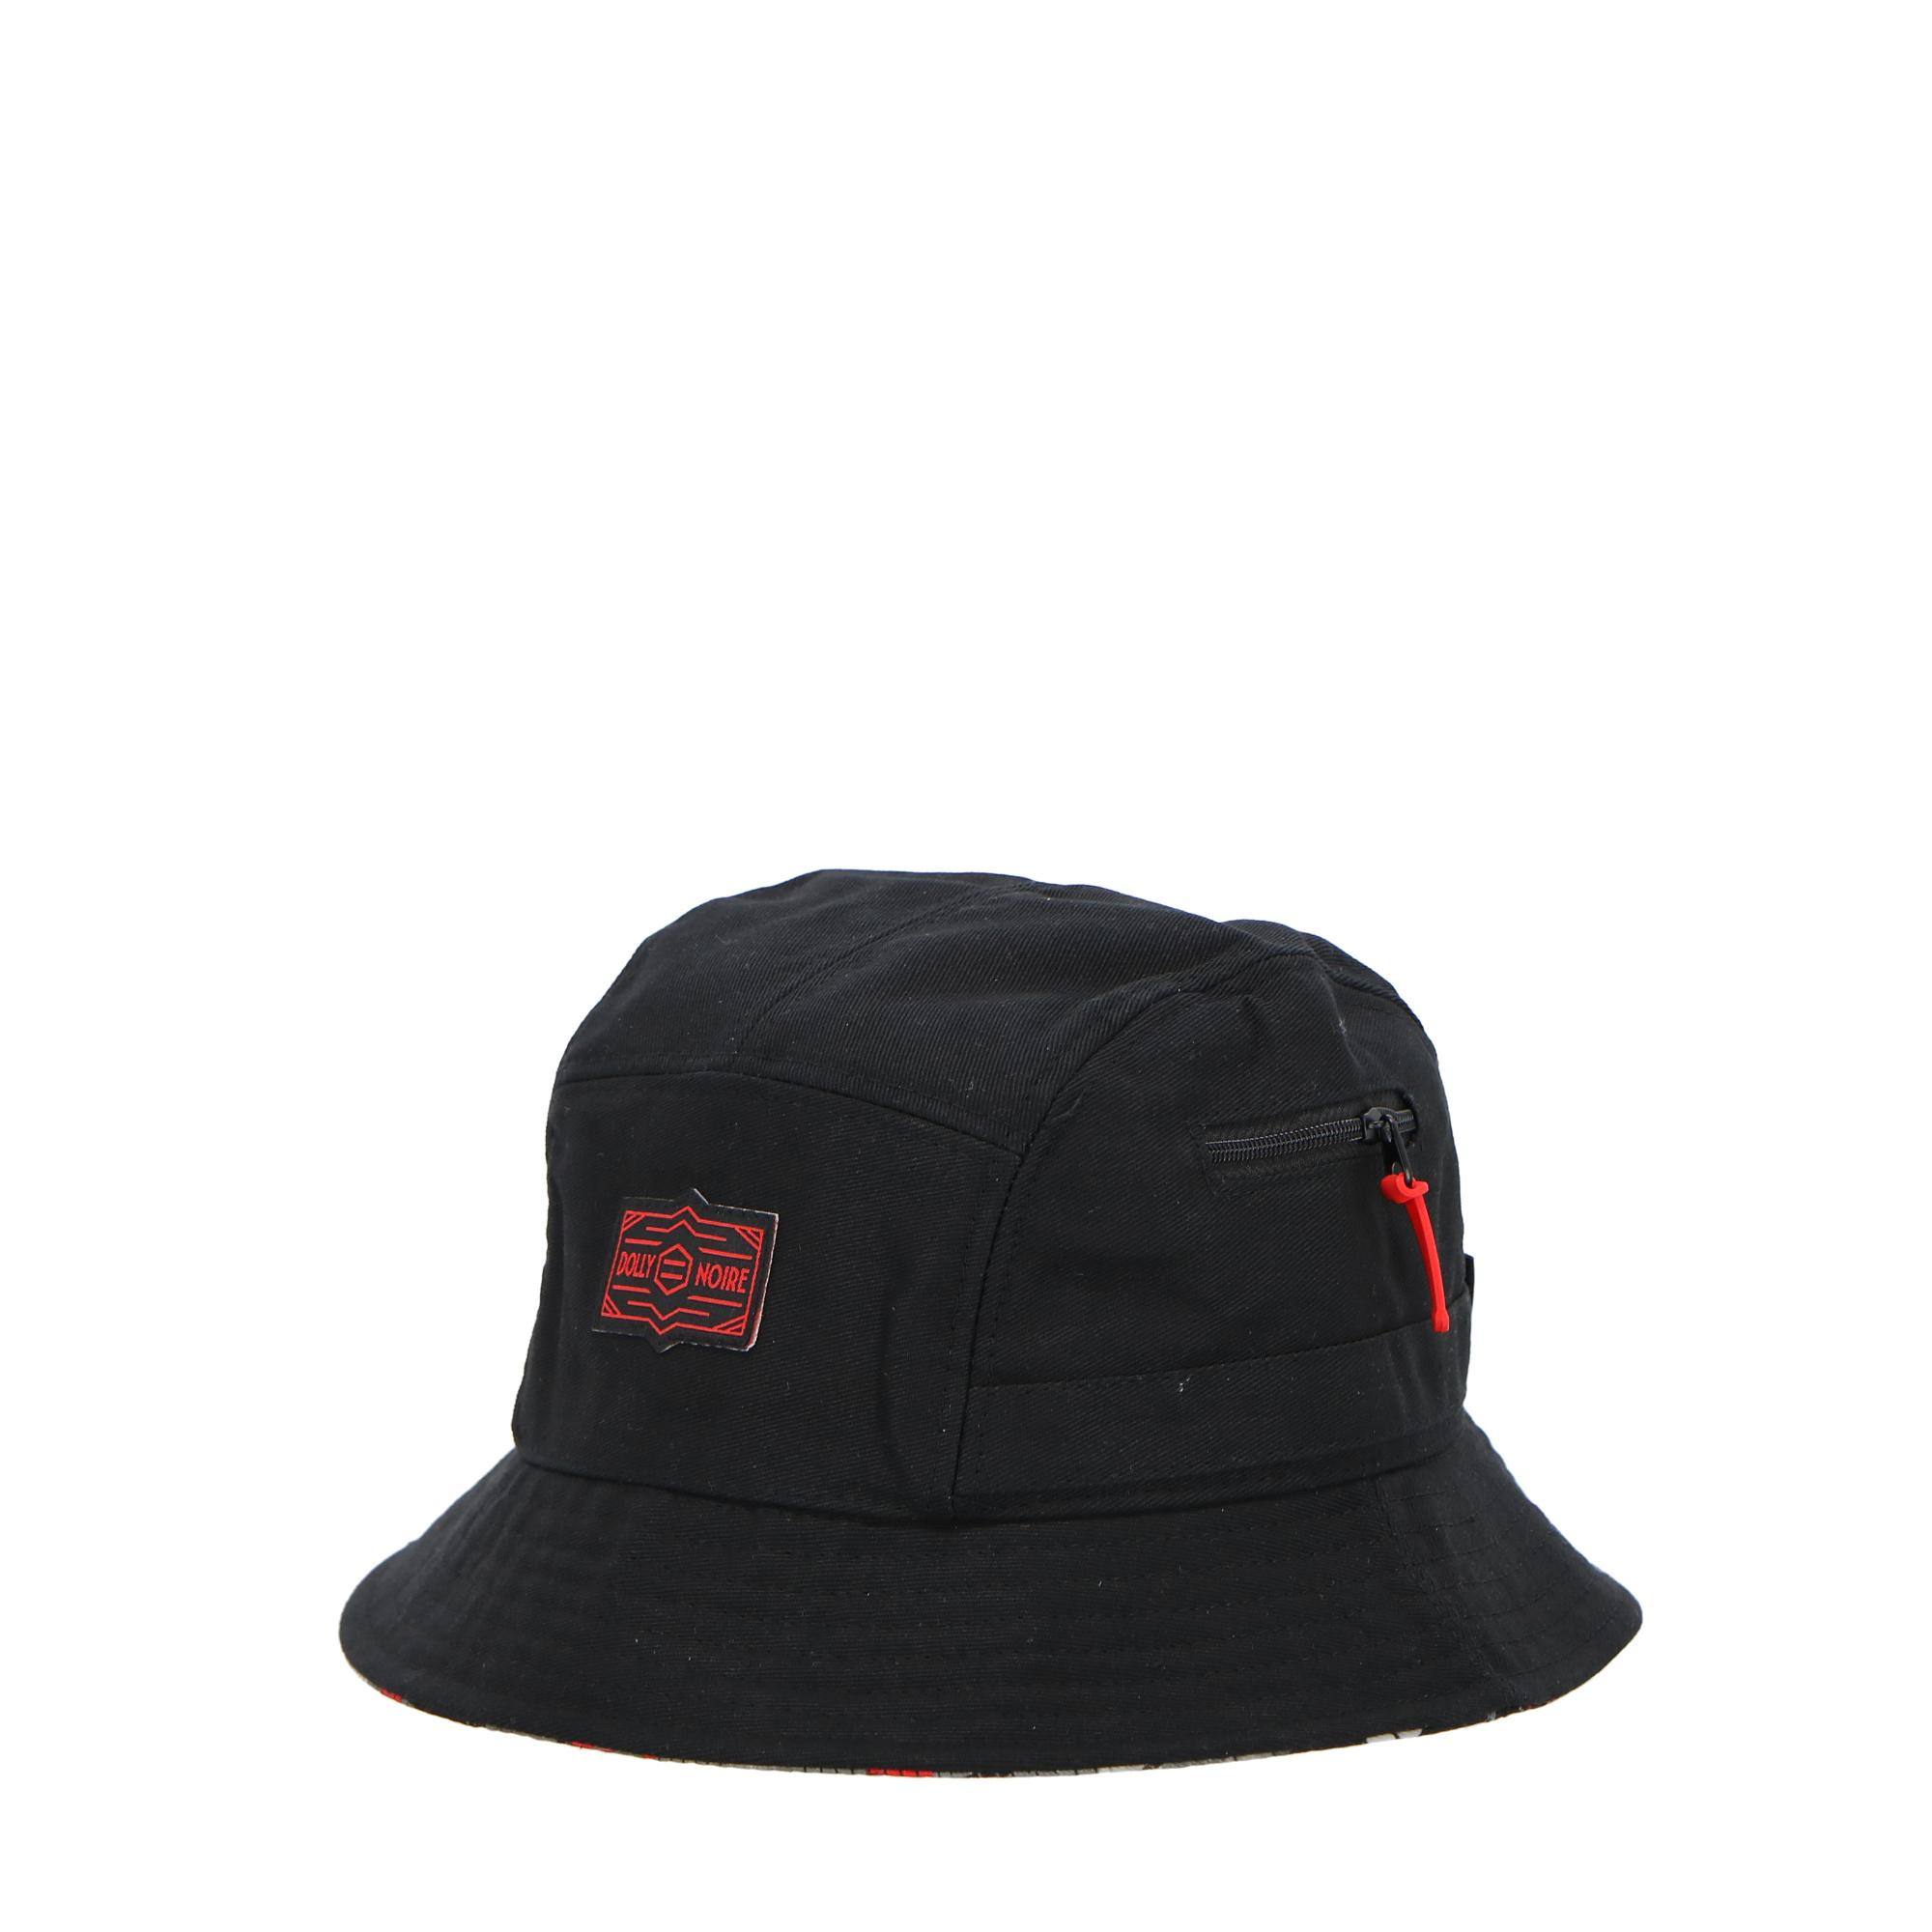 Dolly Noire Black Bucket Black